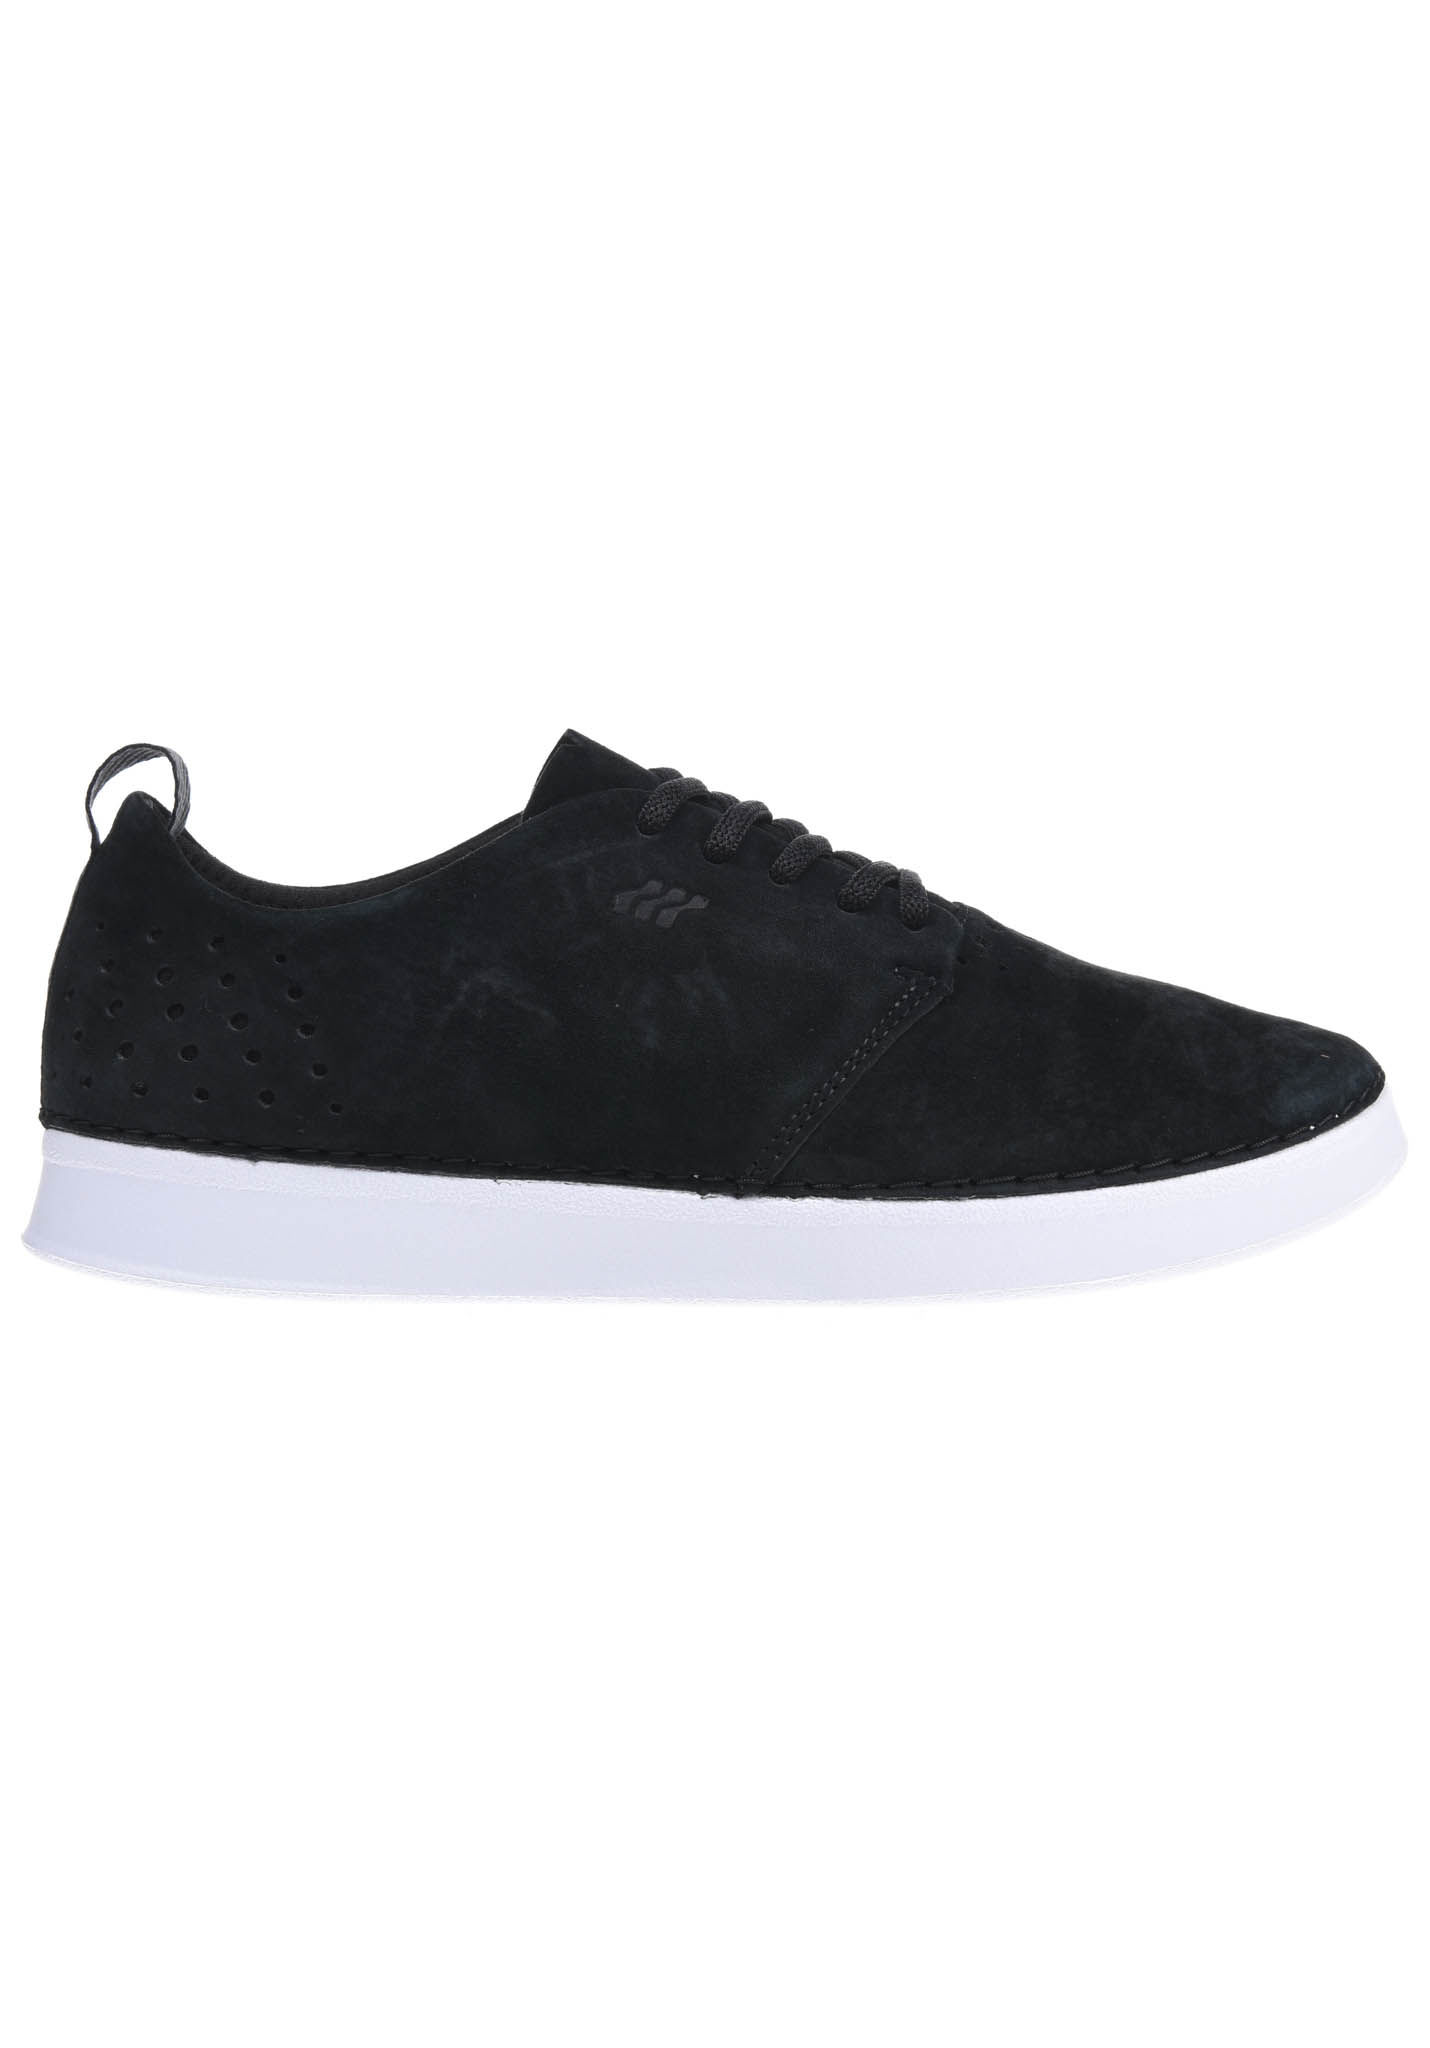 BOXFRESH Carle UH PGSDE Sneakers for Men Black